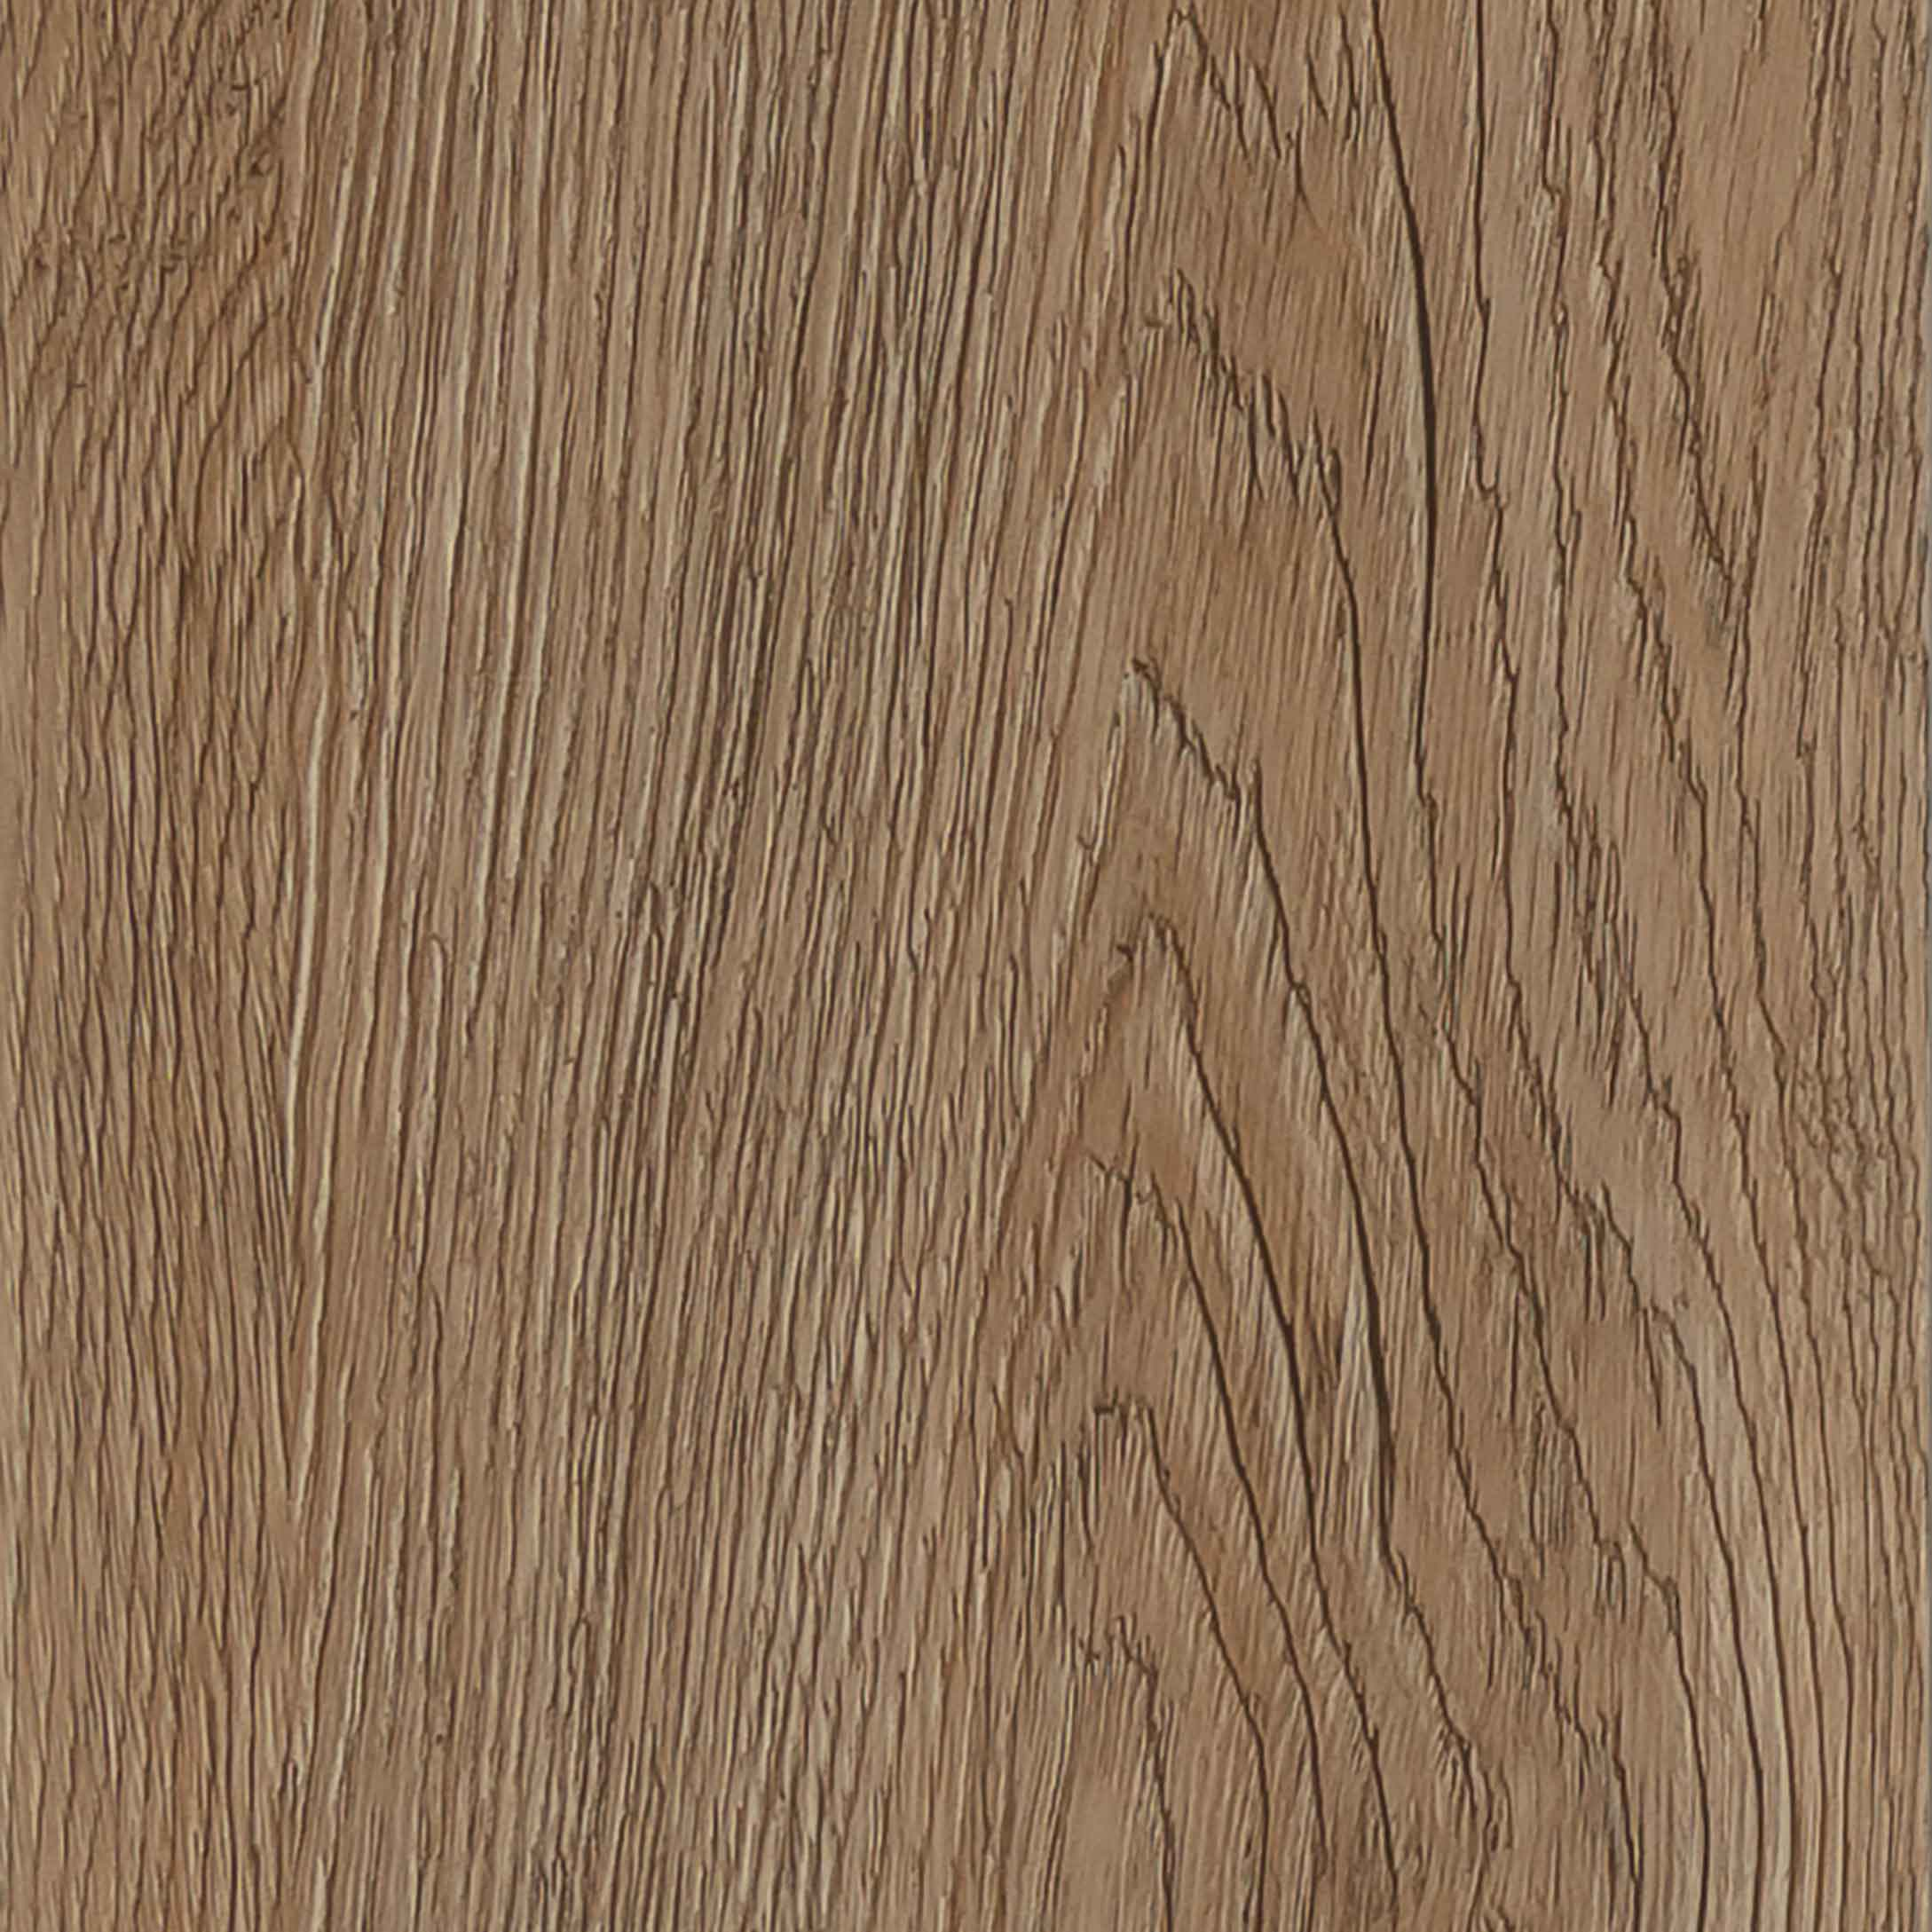 Authentic Rustic Oak 2944